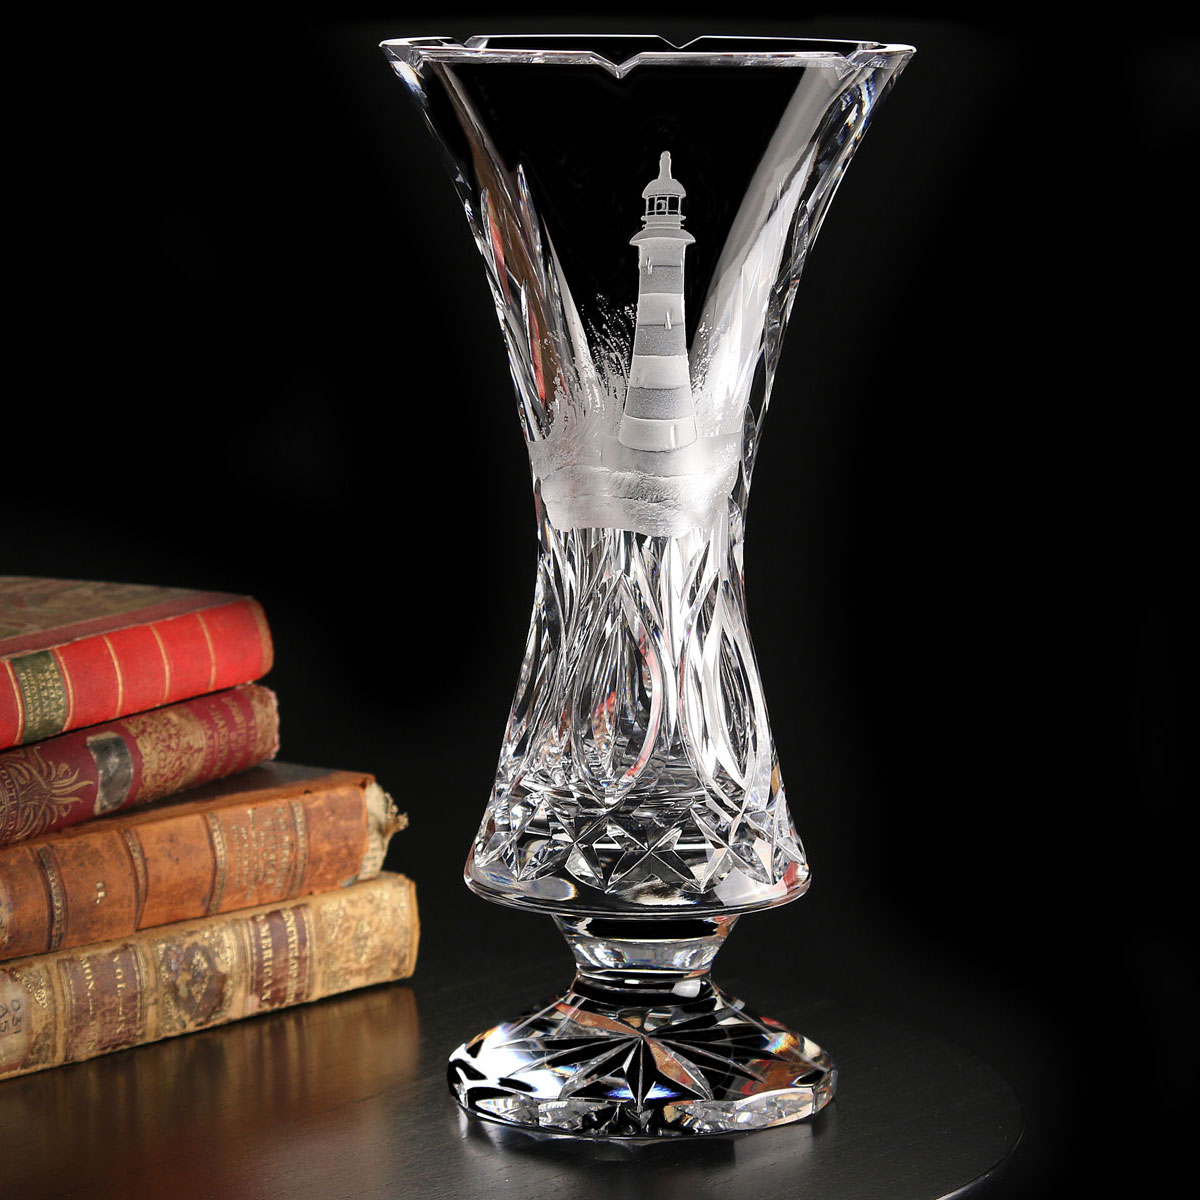 Cashs Ireland, Art Collection Lighthouse Series, Any Port Crystal Vase, Limited Edition